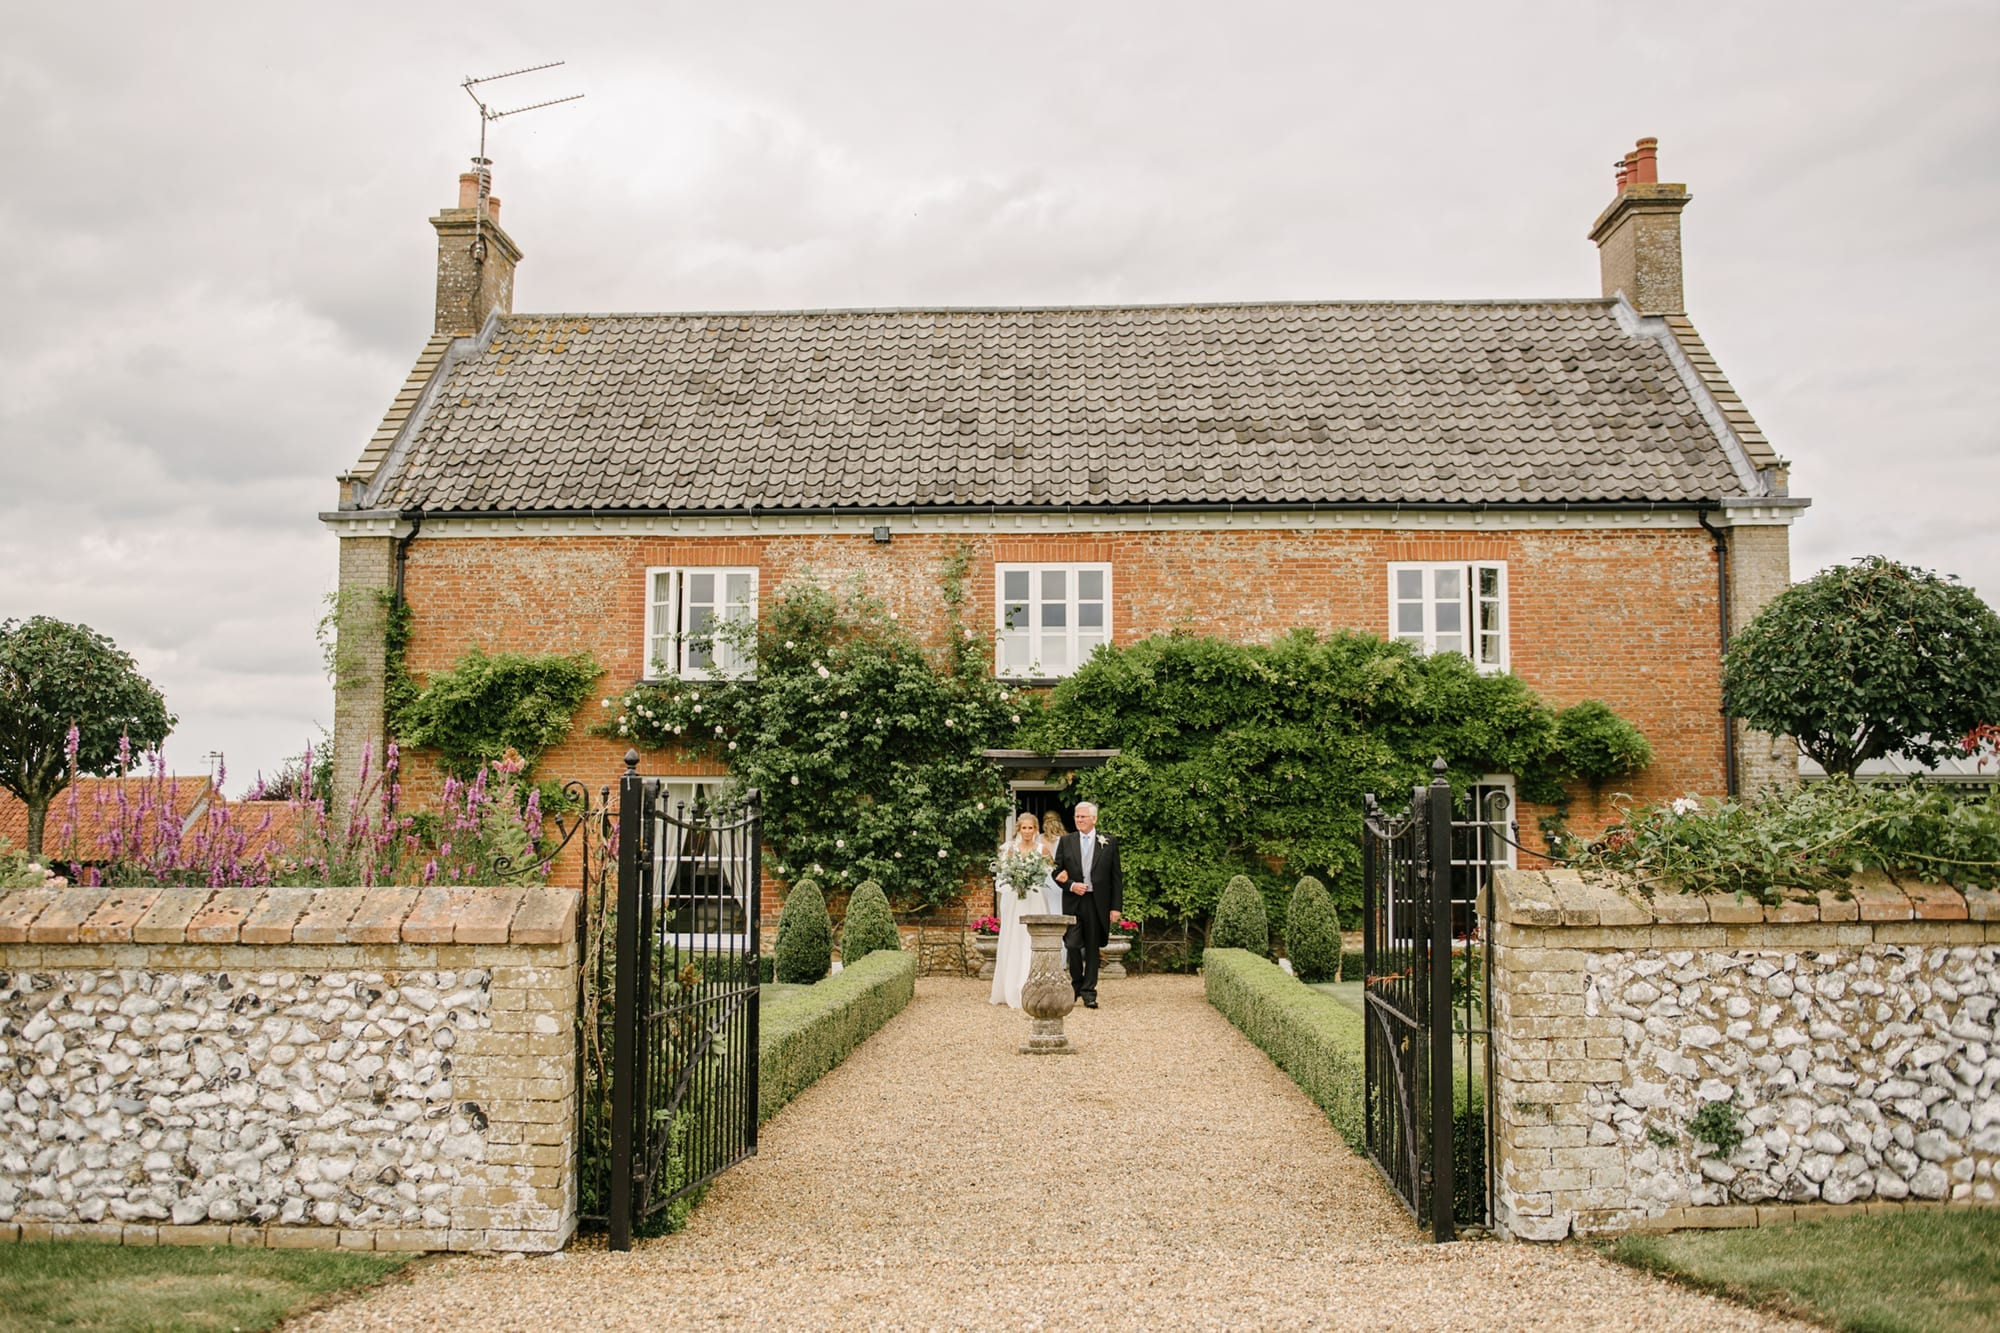 Georgian Norfolk country home with coupe getting married in the garden